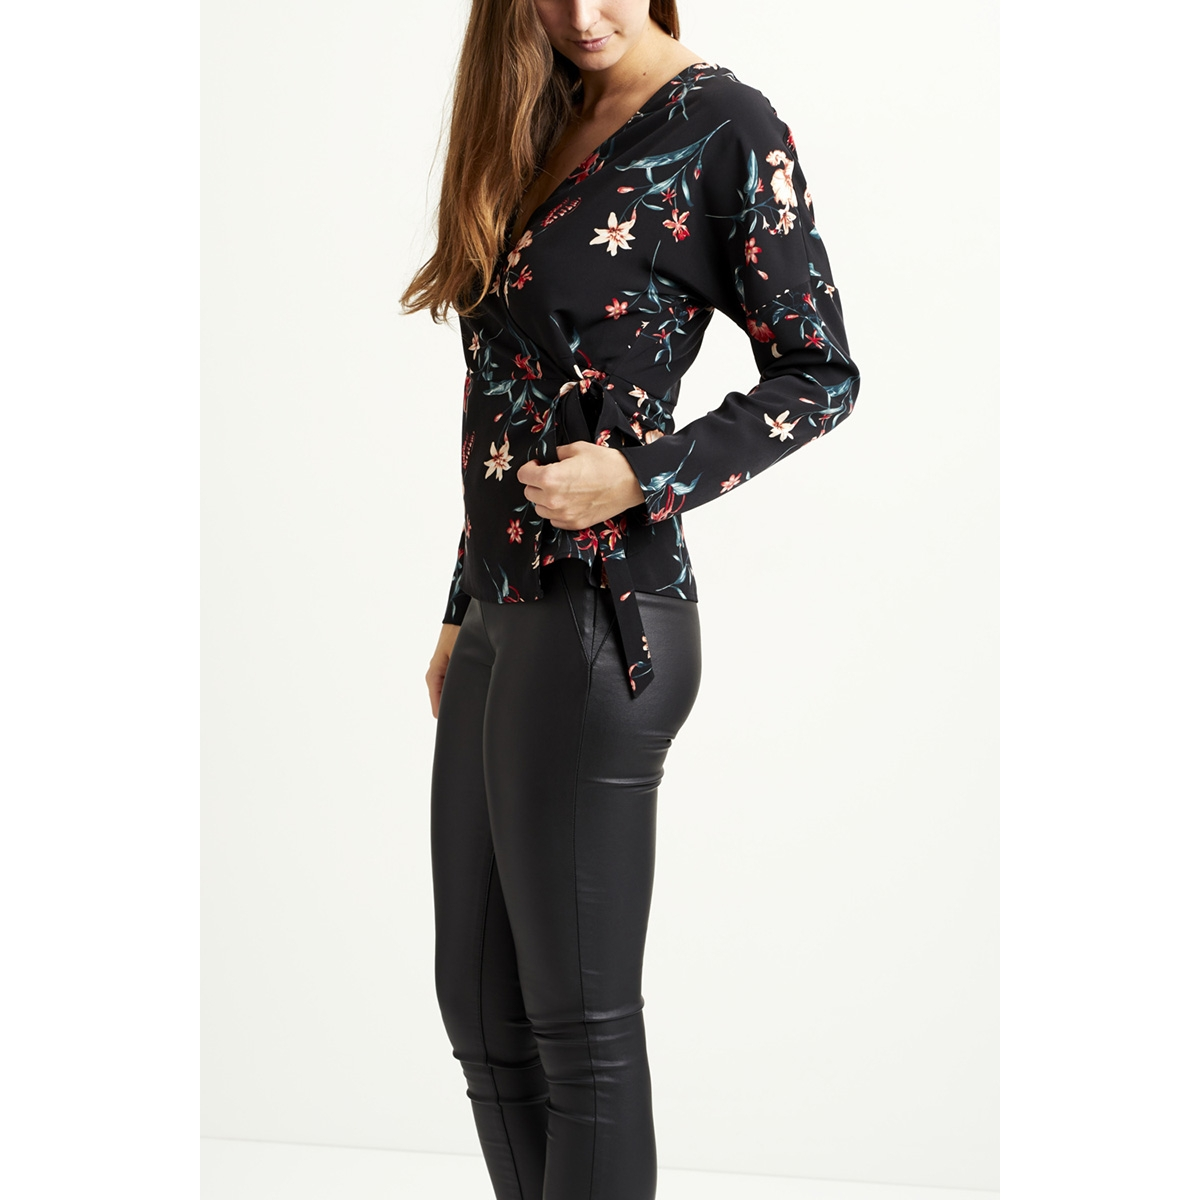 vimabel l/s wrap top/rx 14047442 vila blouse black / flower print